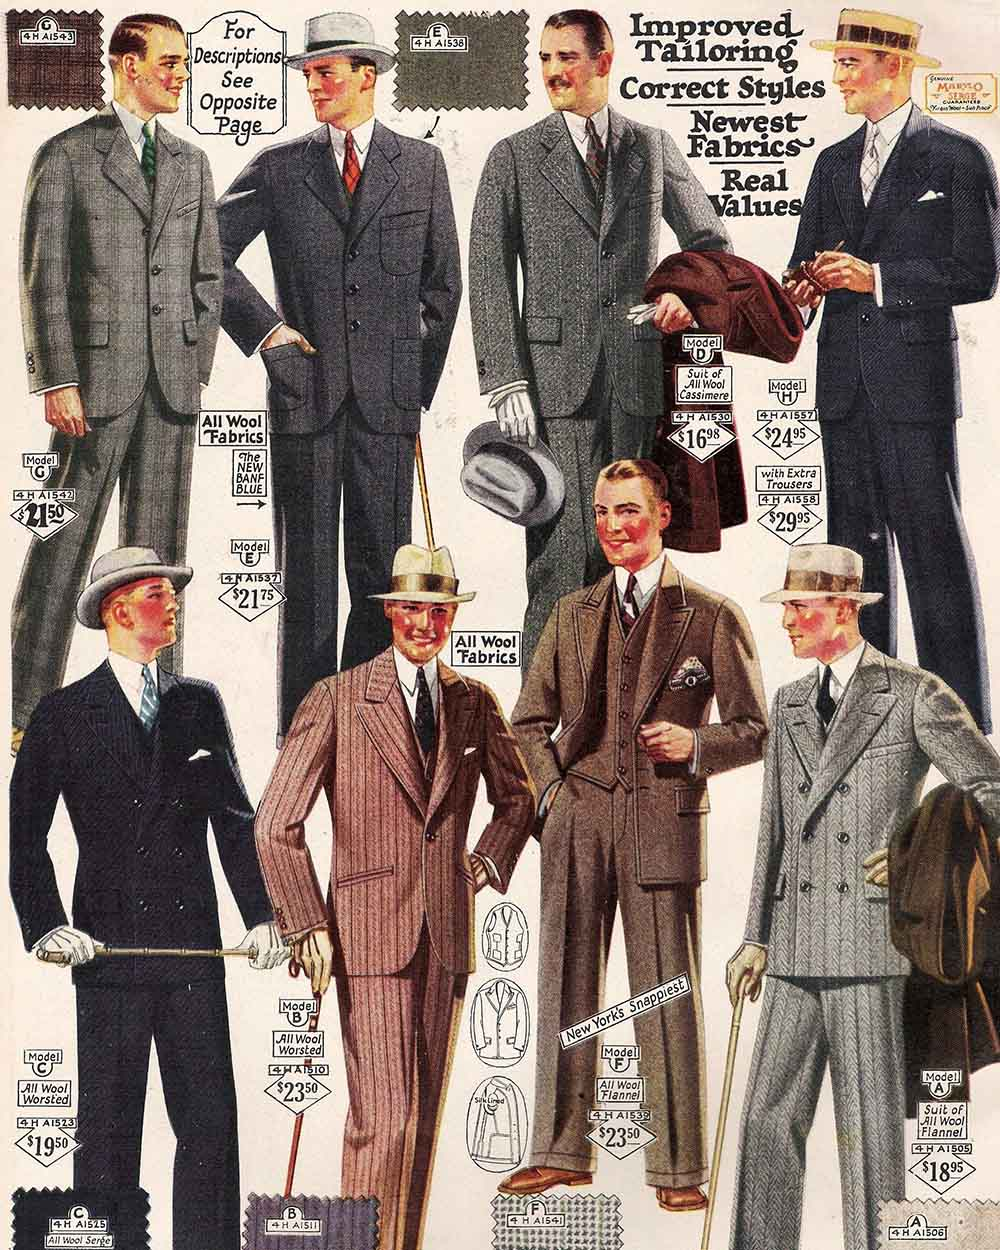 1960 Outfit Men Fashion Stylish